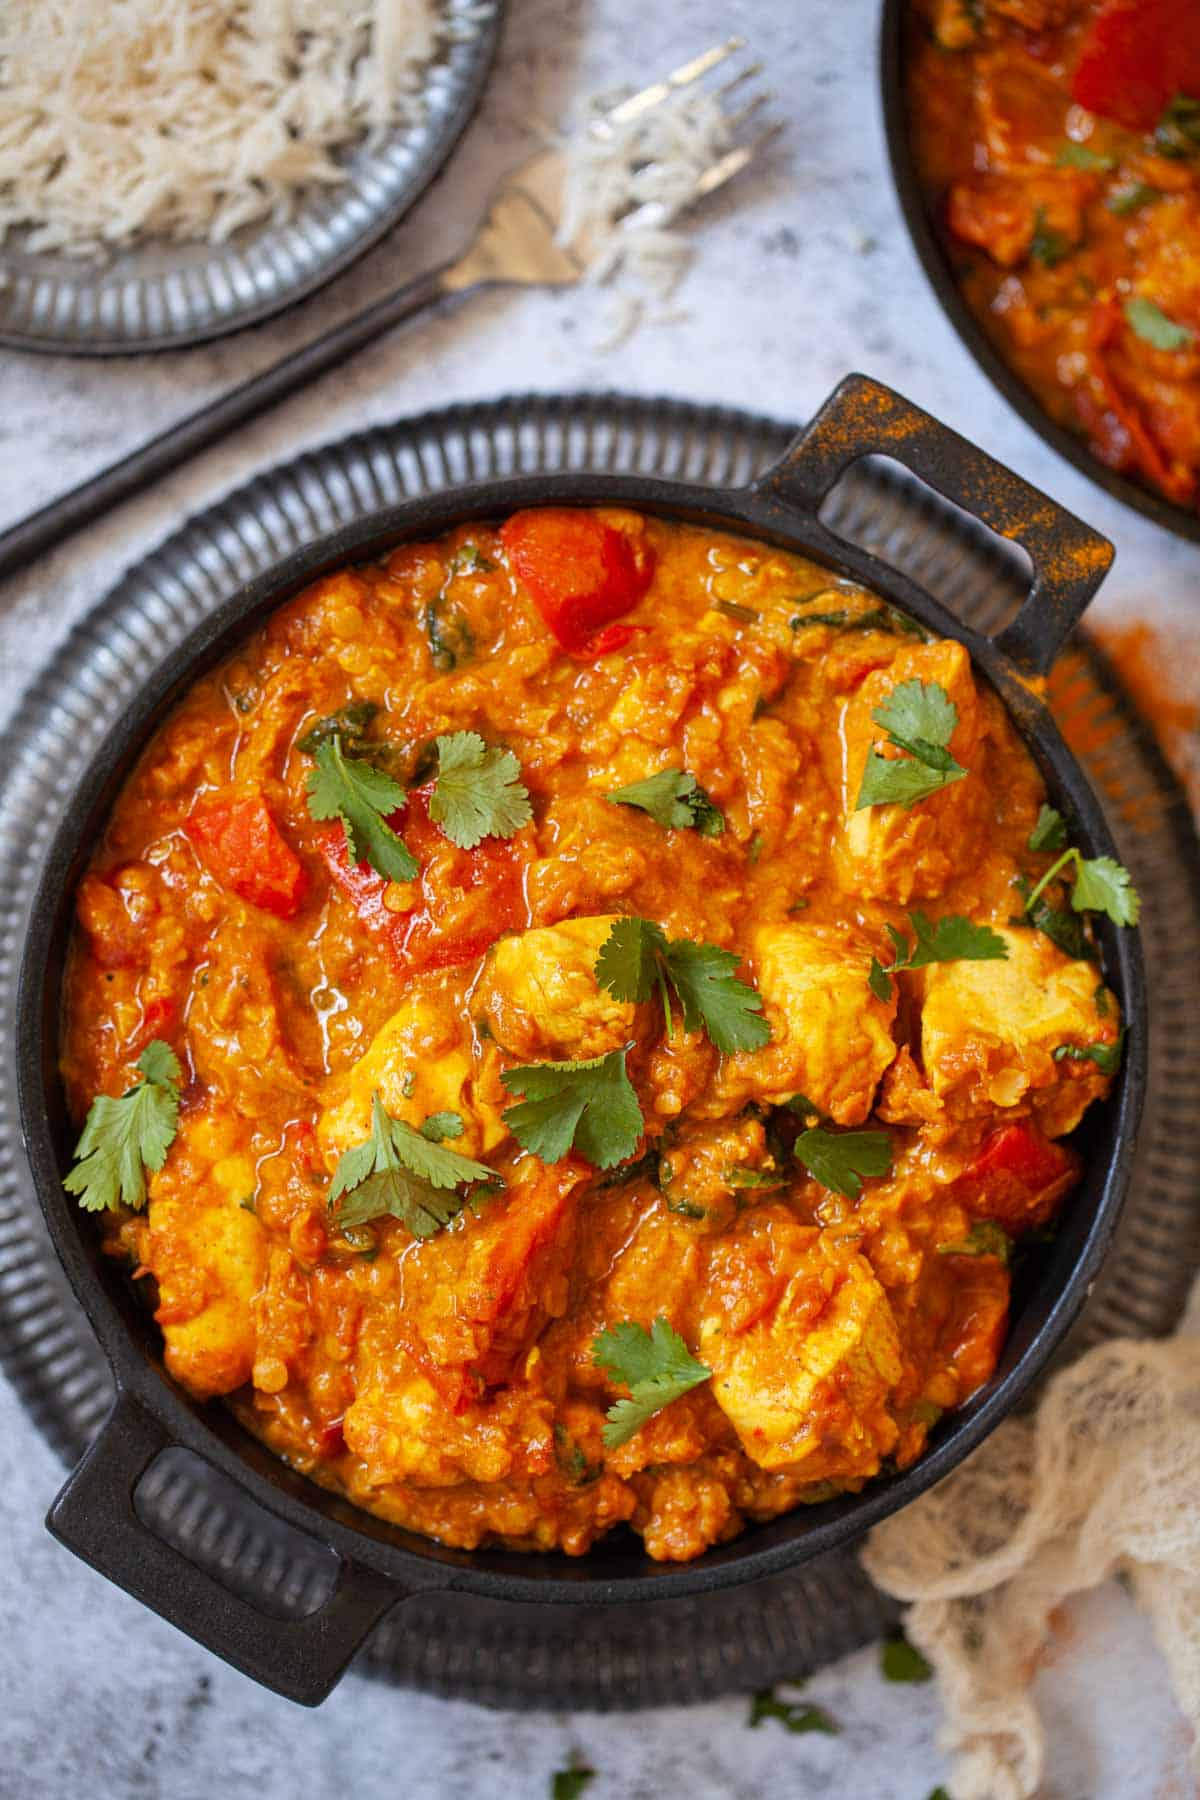 A skillet full of chicken lentil curry